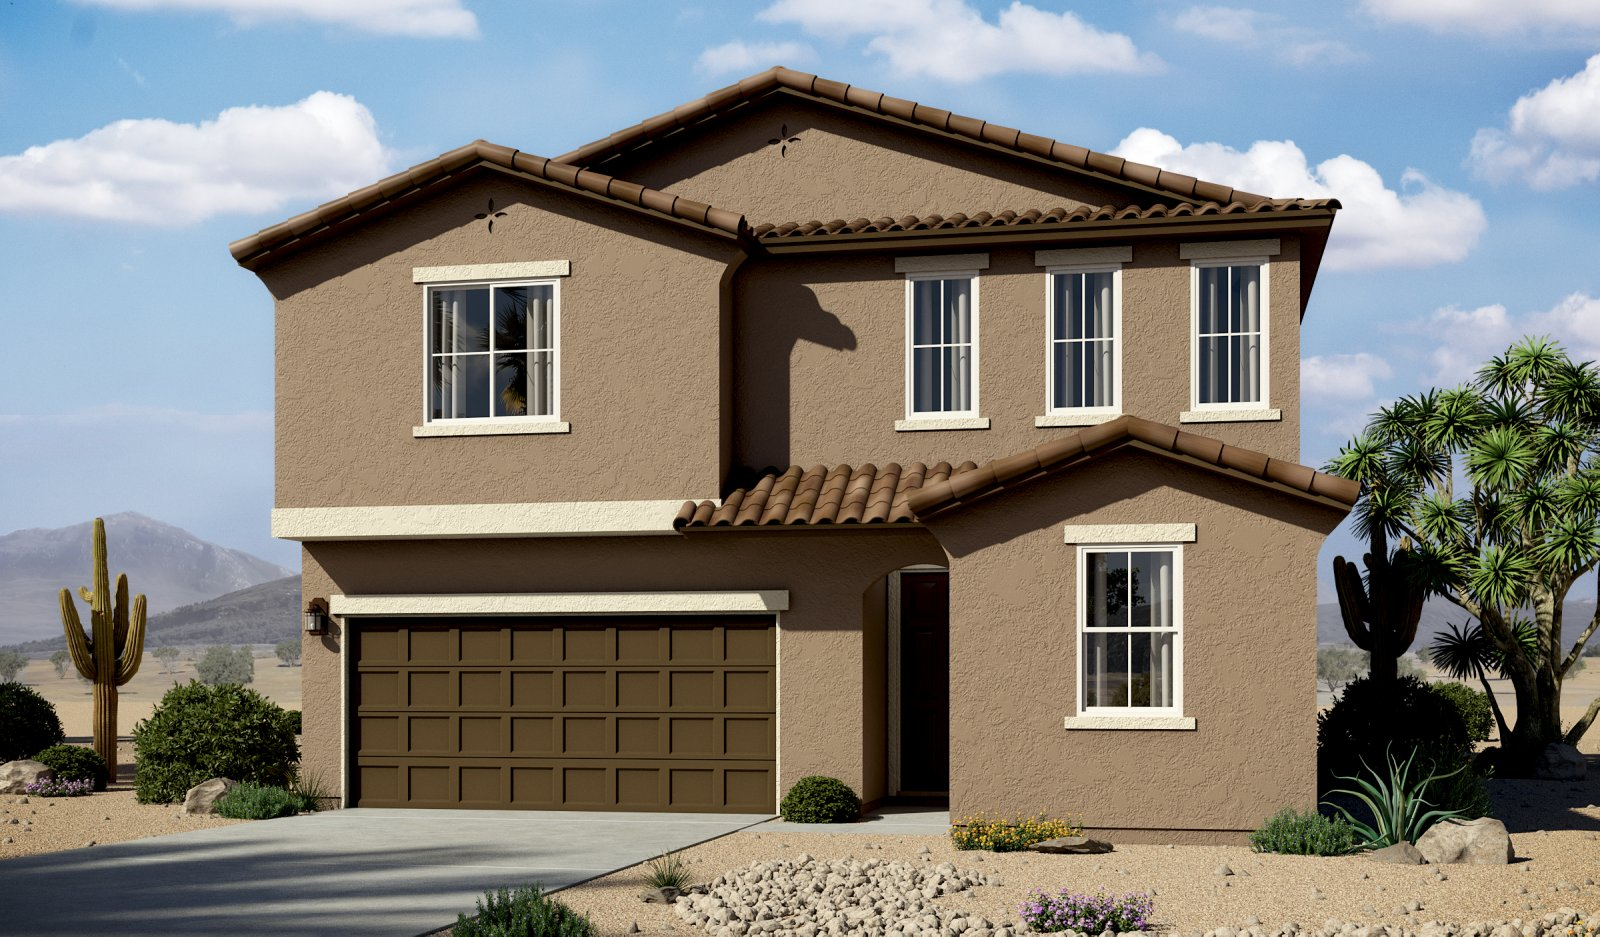 Sahba parade of homes tucson 2018 for American house builders